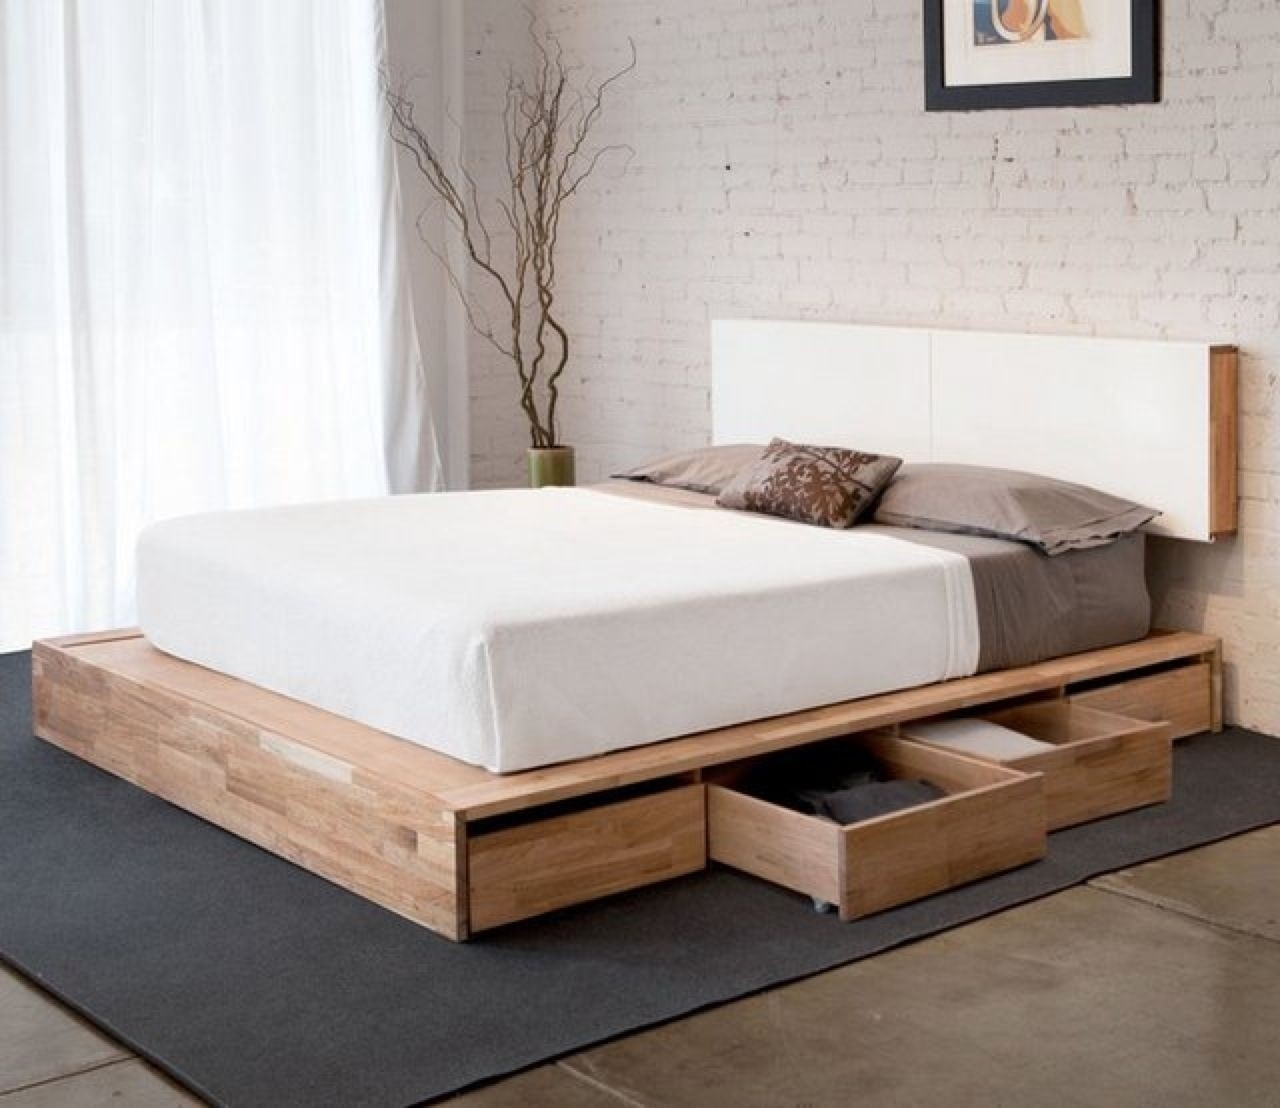 Picture of: Simple Platform Beds Ideas On Foter